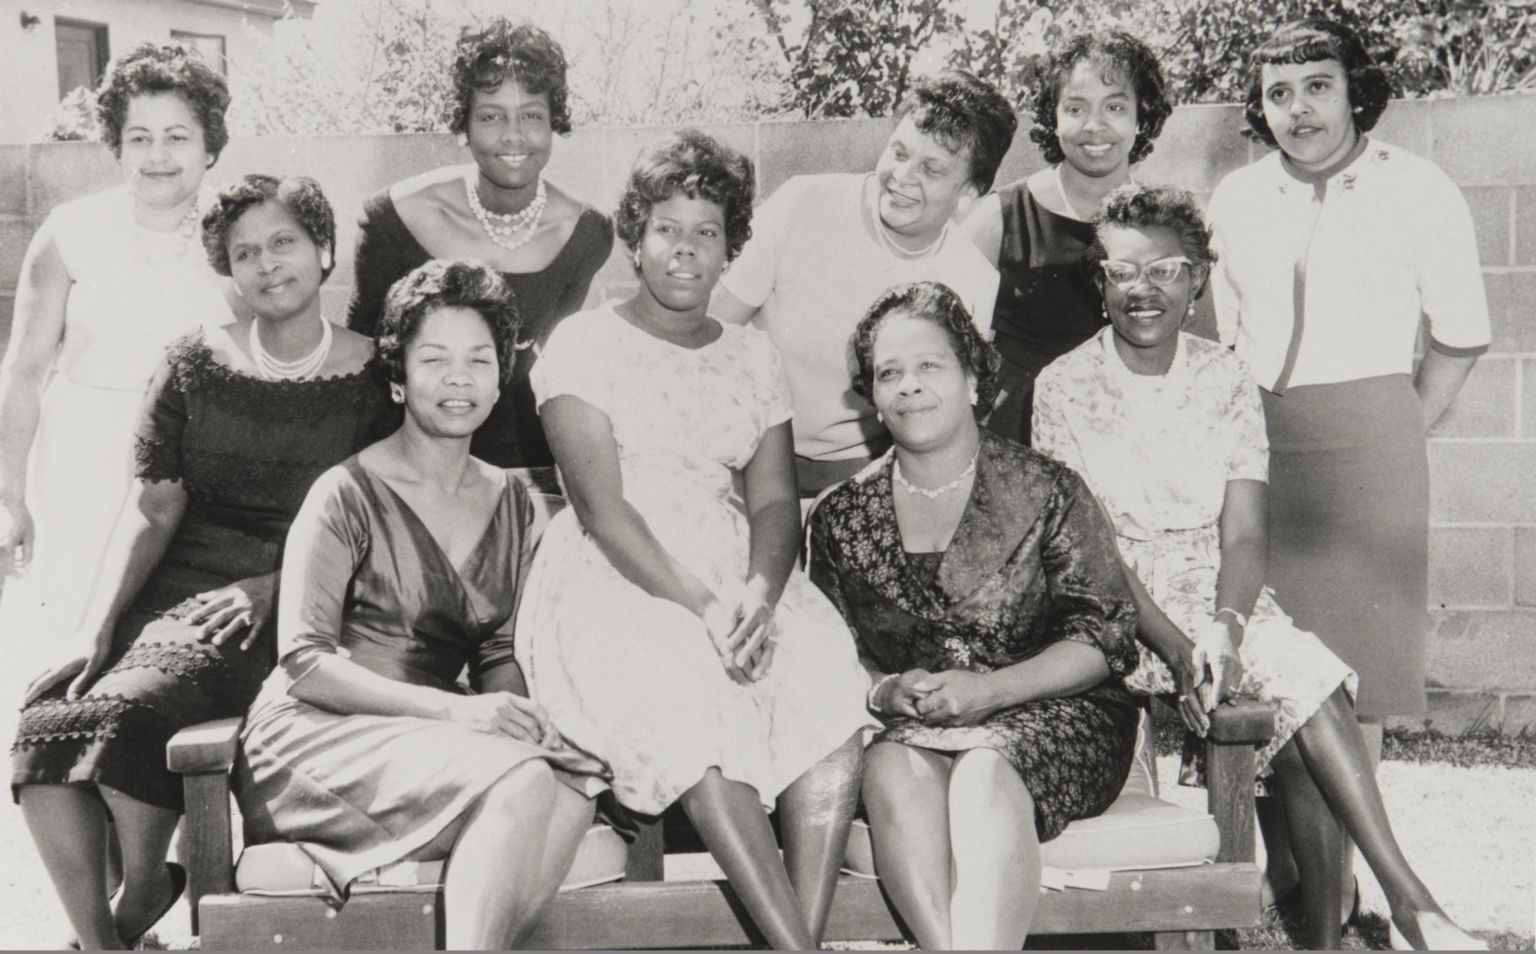 Members of the Twentieth Century Onyx Club : 1963 ; a social and philanthropic group founded in 1961 by Ruth Gibson. Standing L. to R.: Thelma Calhoun, Lona Fountain, Mary Mason, Mary Jordan, Gloria Thomas. Seated L. to R.: Elsie Kelley*, Geraldine Lyghts*, Faye Brown, Marguerite Milton, Ruth Gibson*. *Charter members. Other charter members not included in this picture are Mattie Adams, Mildred Morrison, W. Margaret Tatum, Elsie Johnson and Patricia Goone.